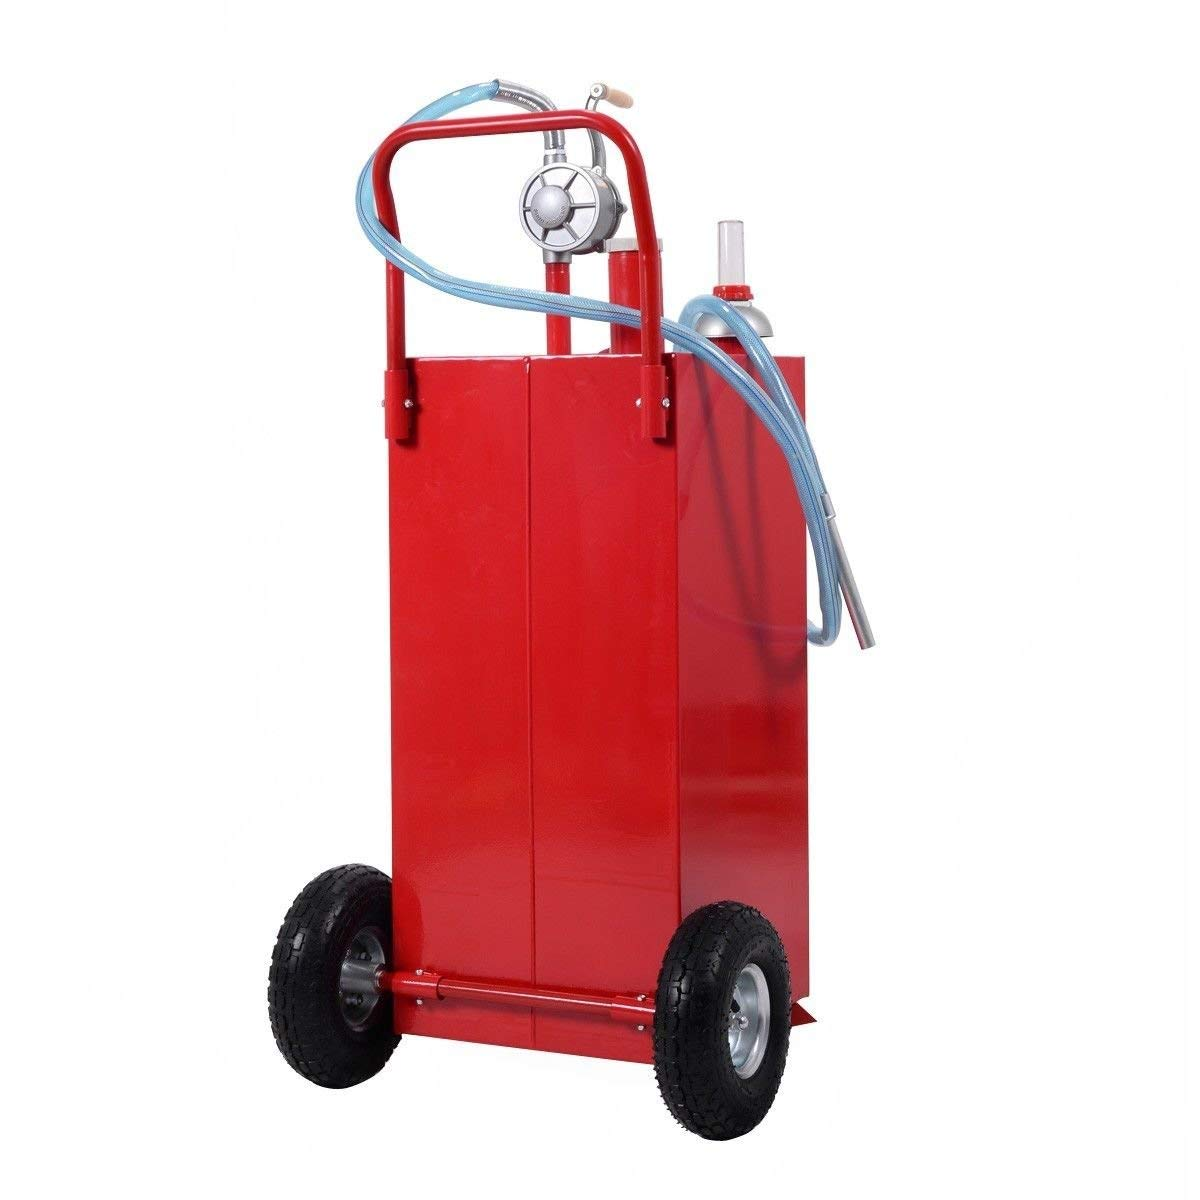 Goplus 30 Gallon Gas Caddy, Fuel Diesel Storage Tank, Rugged Durable Material, Anti-Static Ground Clamp, Labor-Saving Hand Operated Defueling Pump, 8 Feet Discharge Hose Red Caddy (Red) by Goplus (Image #4)